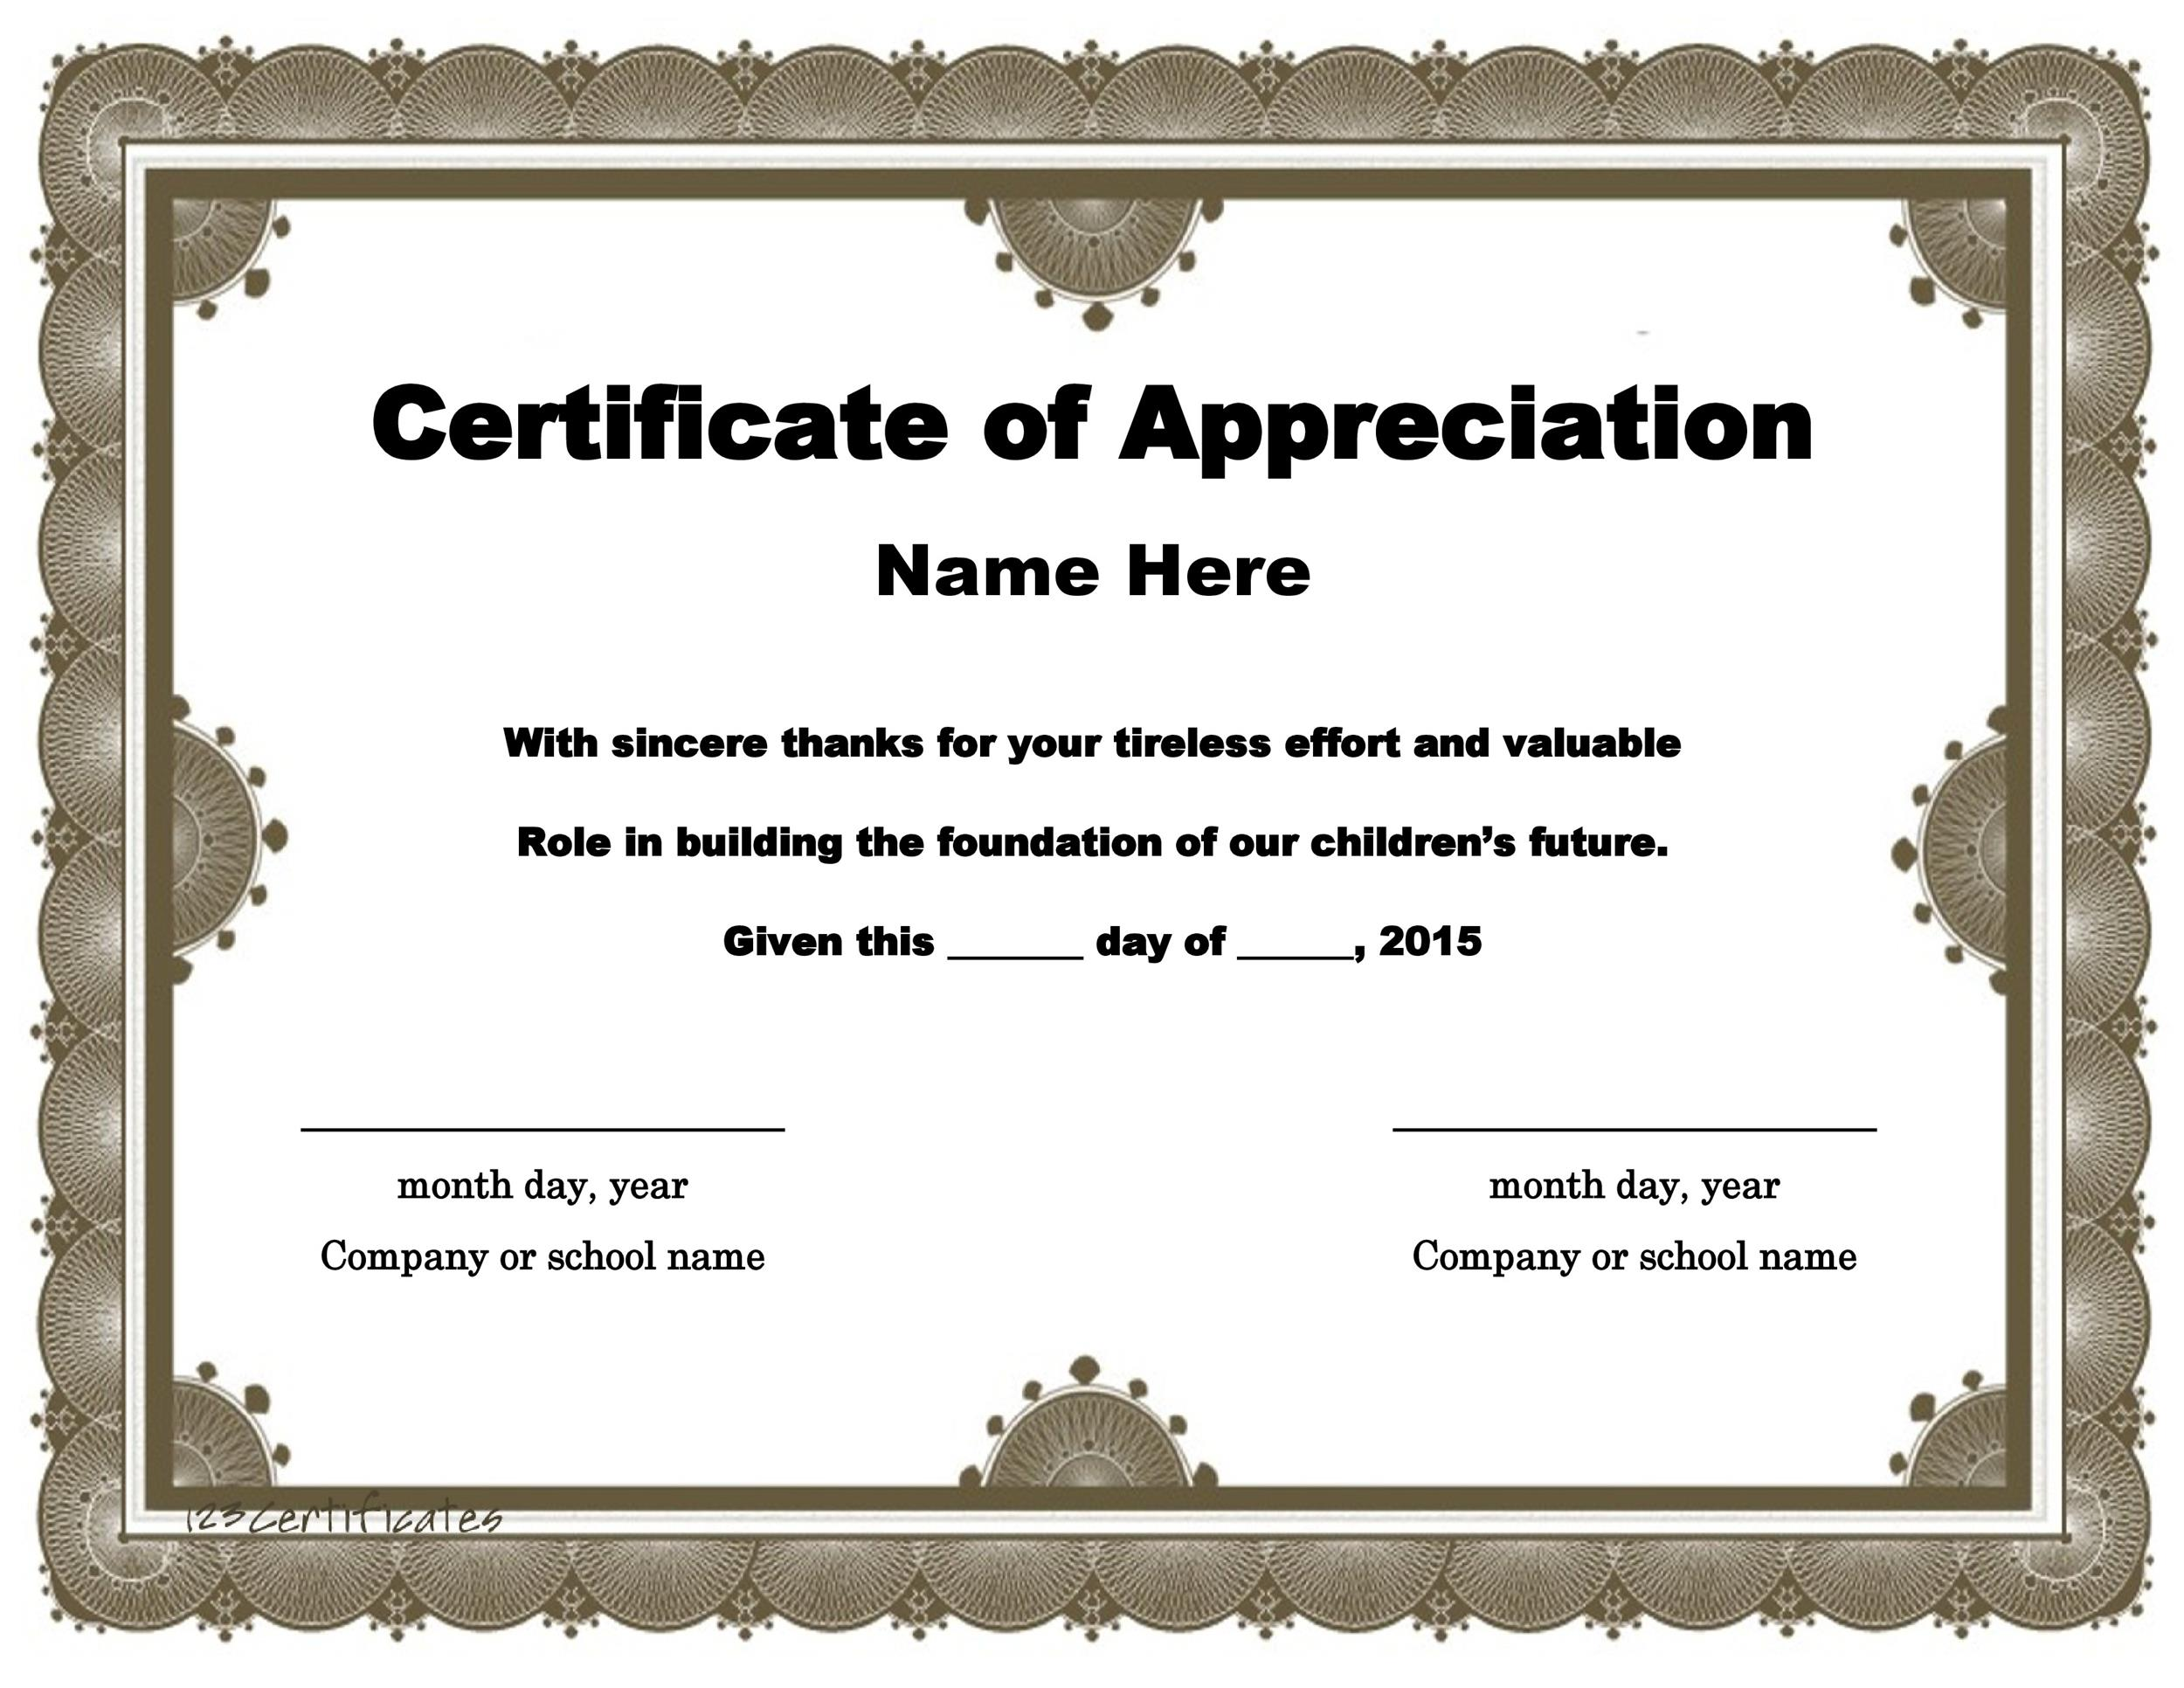 Printable Certificate Of Appreciation 03  Certificate Of Appreciation Template For Word